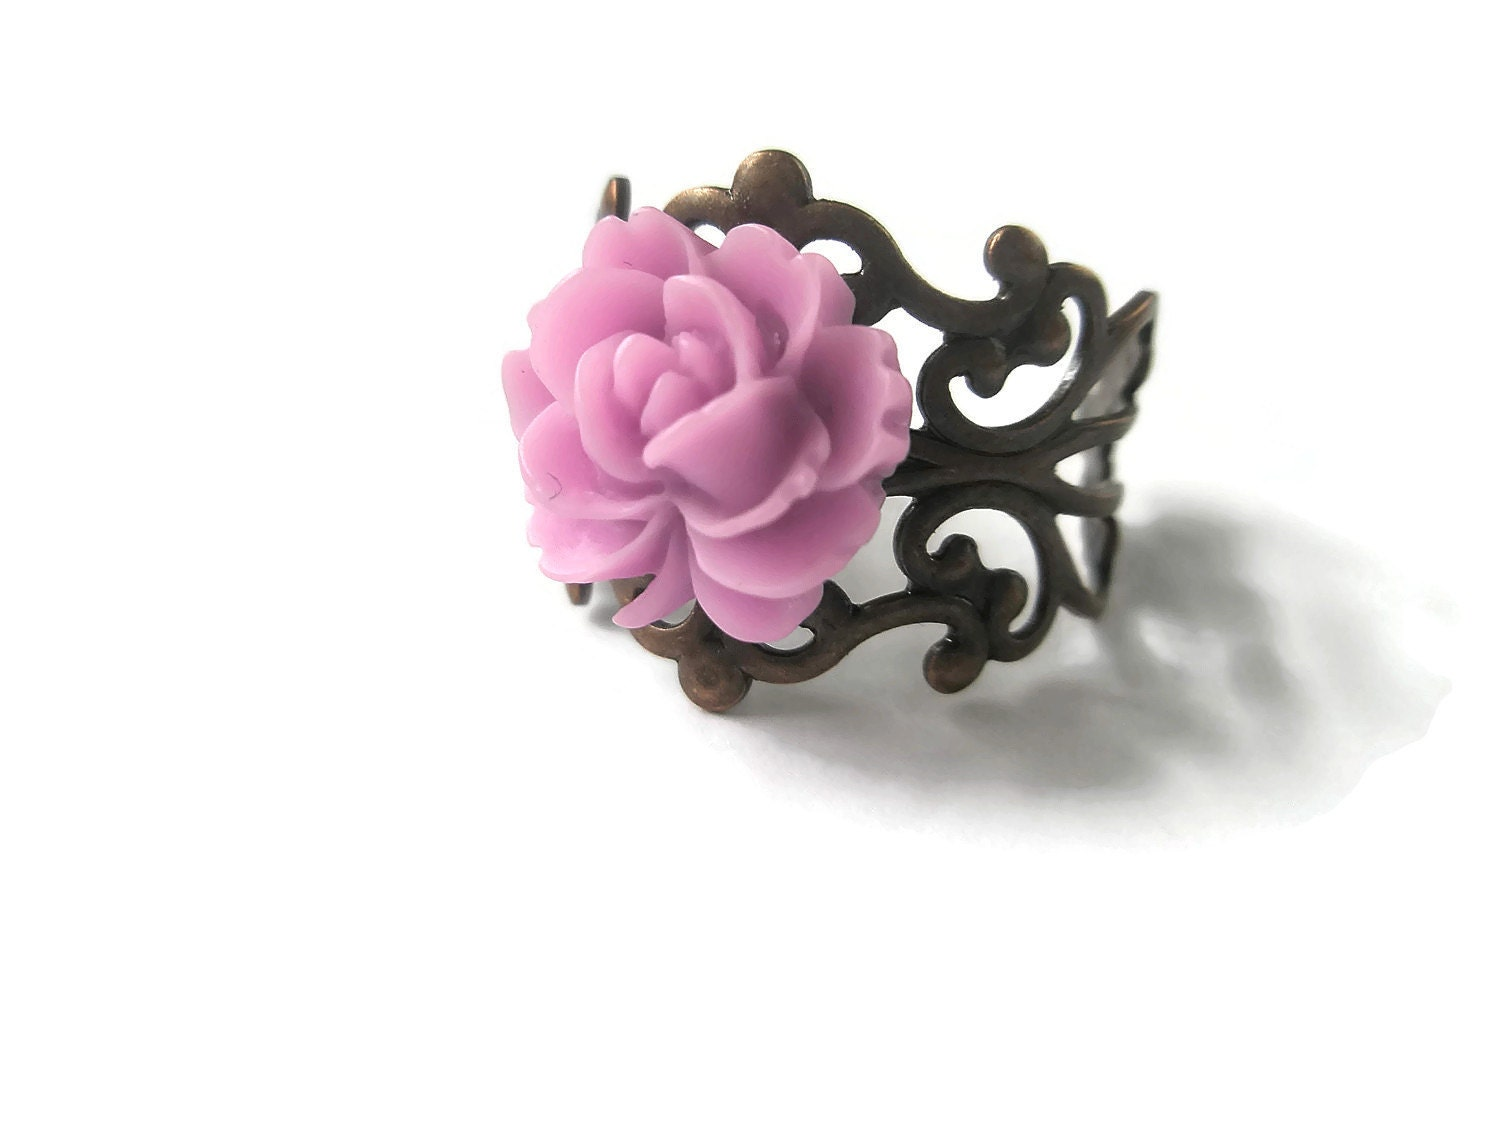 Ring Lilac Rose filigree Antique Copper  Flower adjustable Jewellery Hand Made by Futti Tutti Bead candy